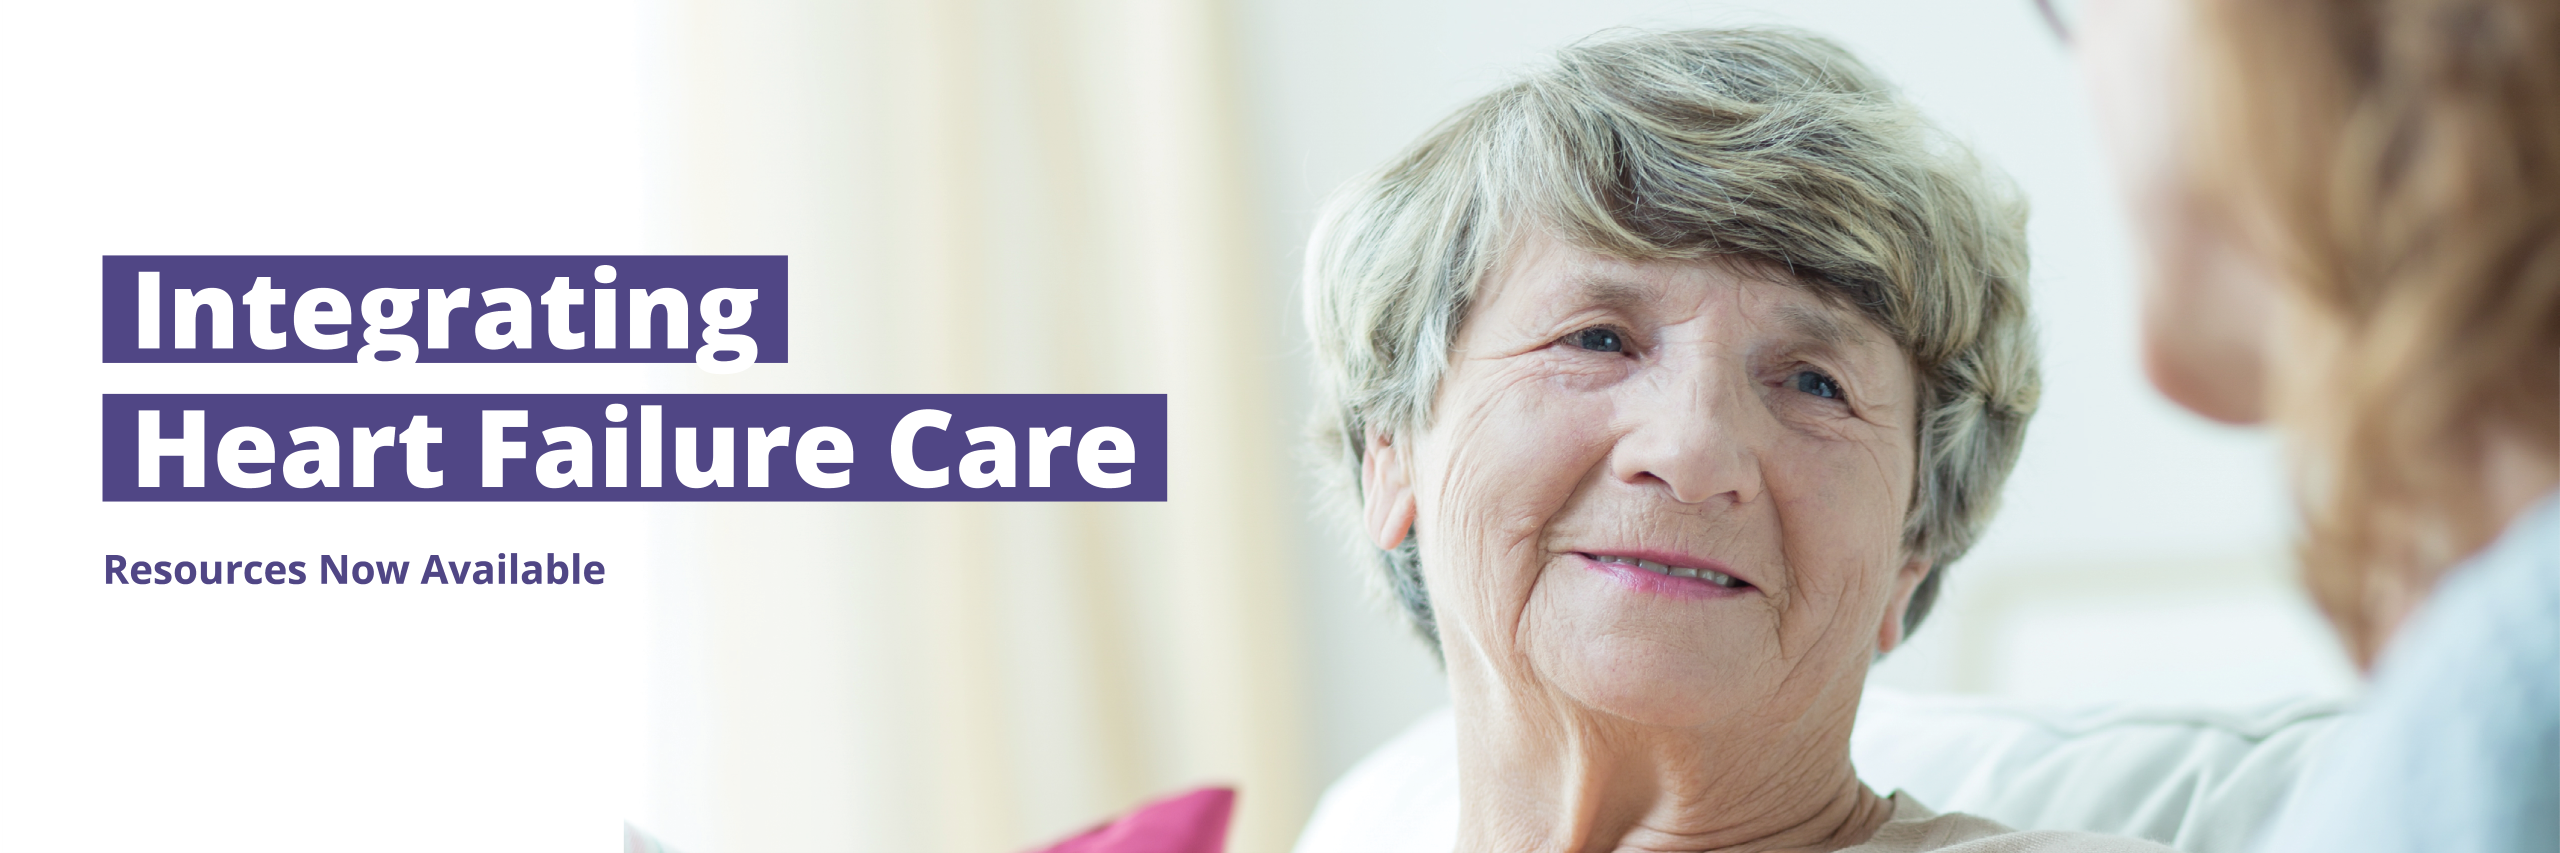 Banner of elderly woman smiling in conversation with another woman indicating new Integrated Heart Failure Care resources are available.